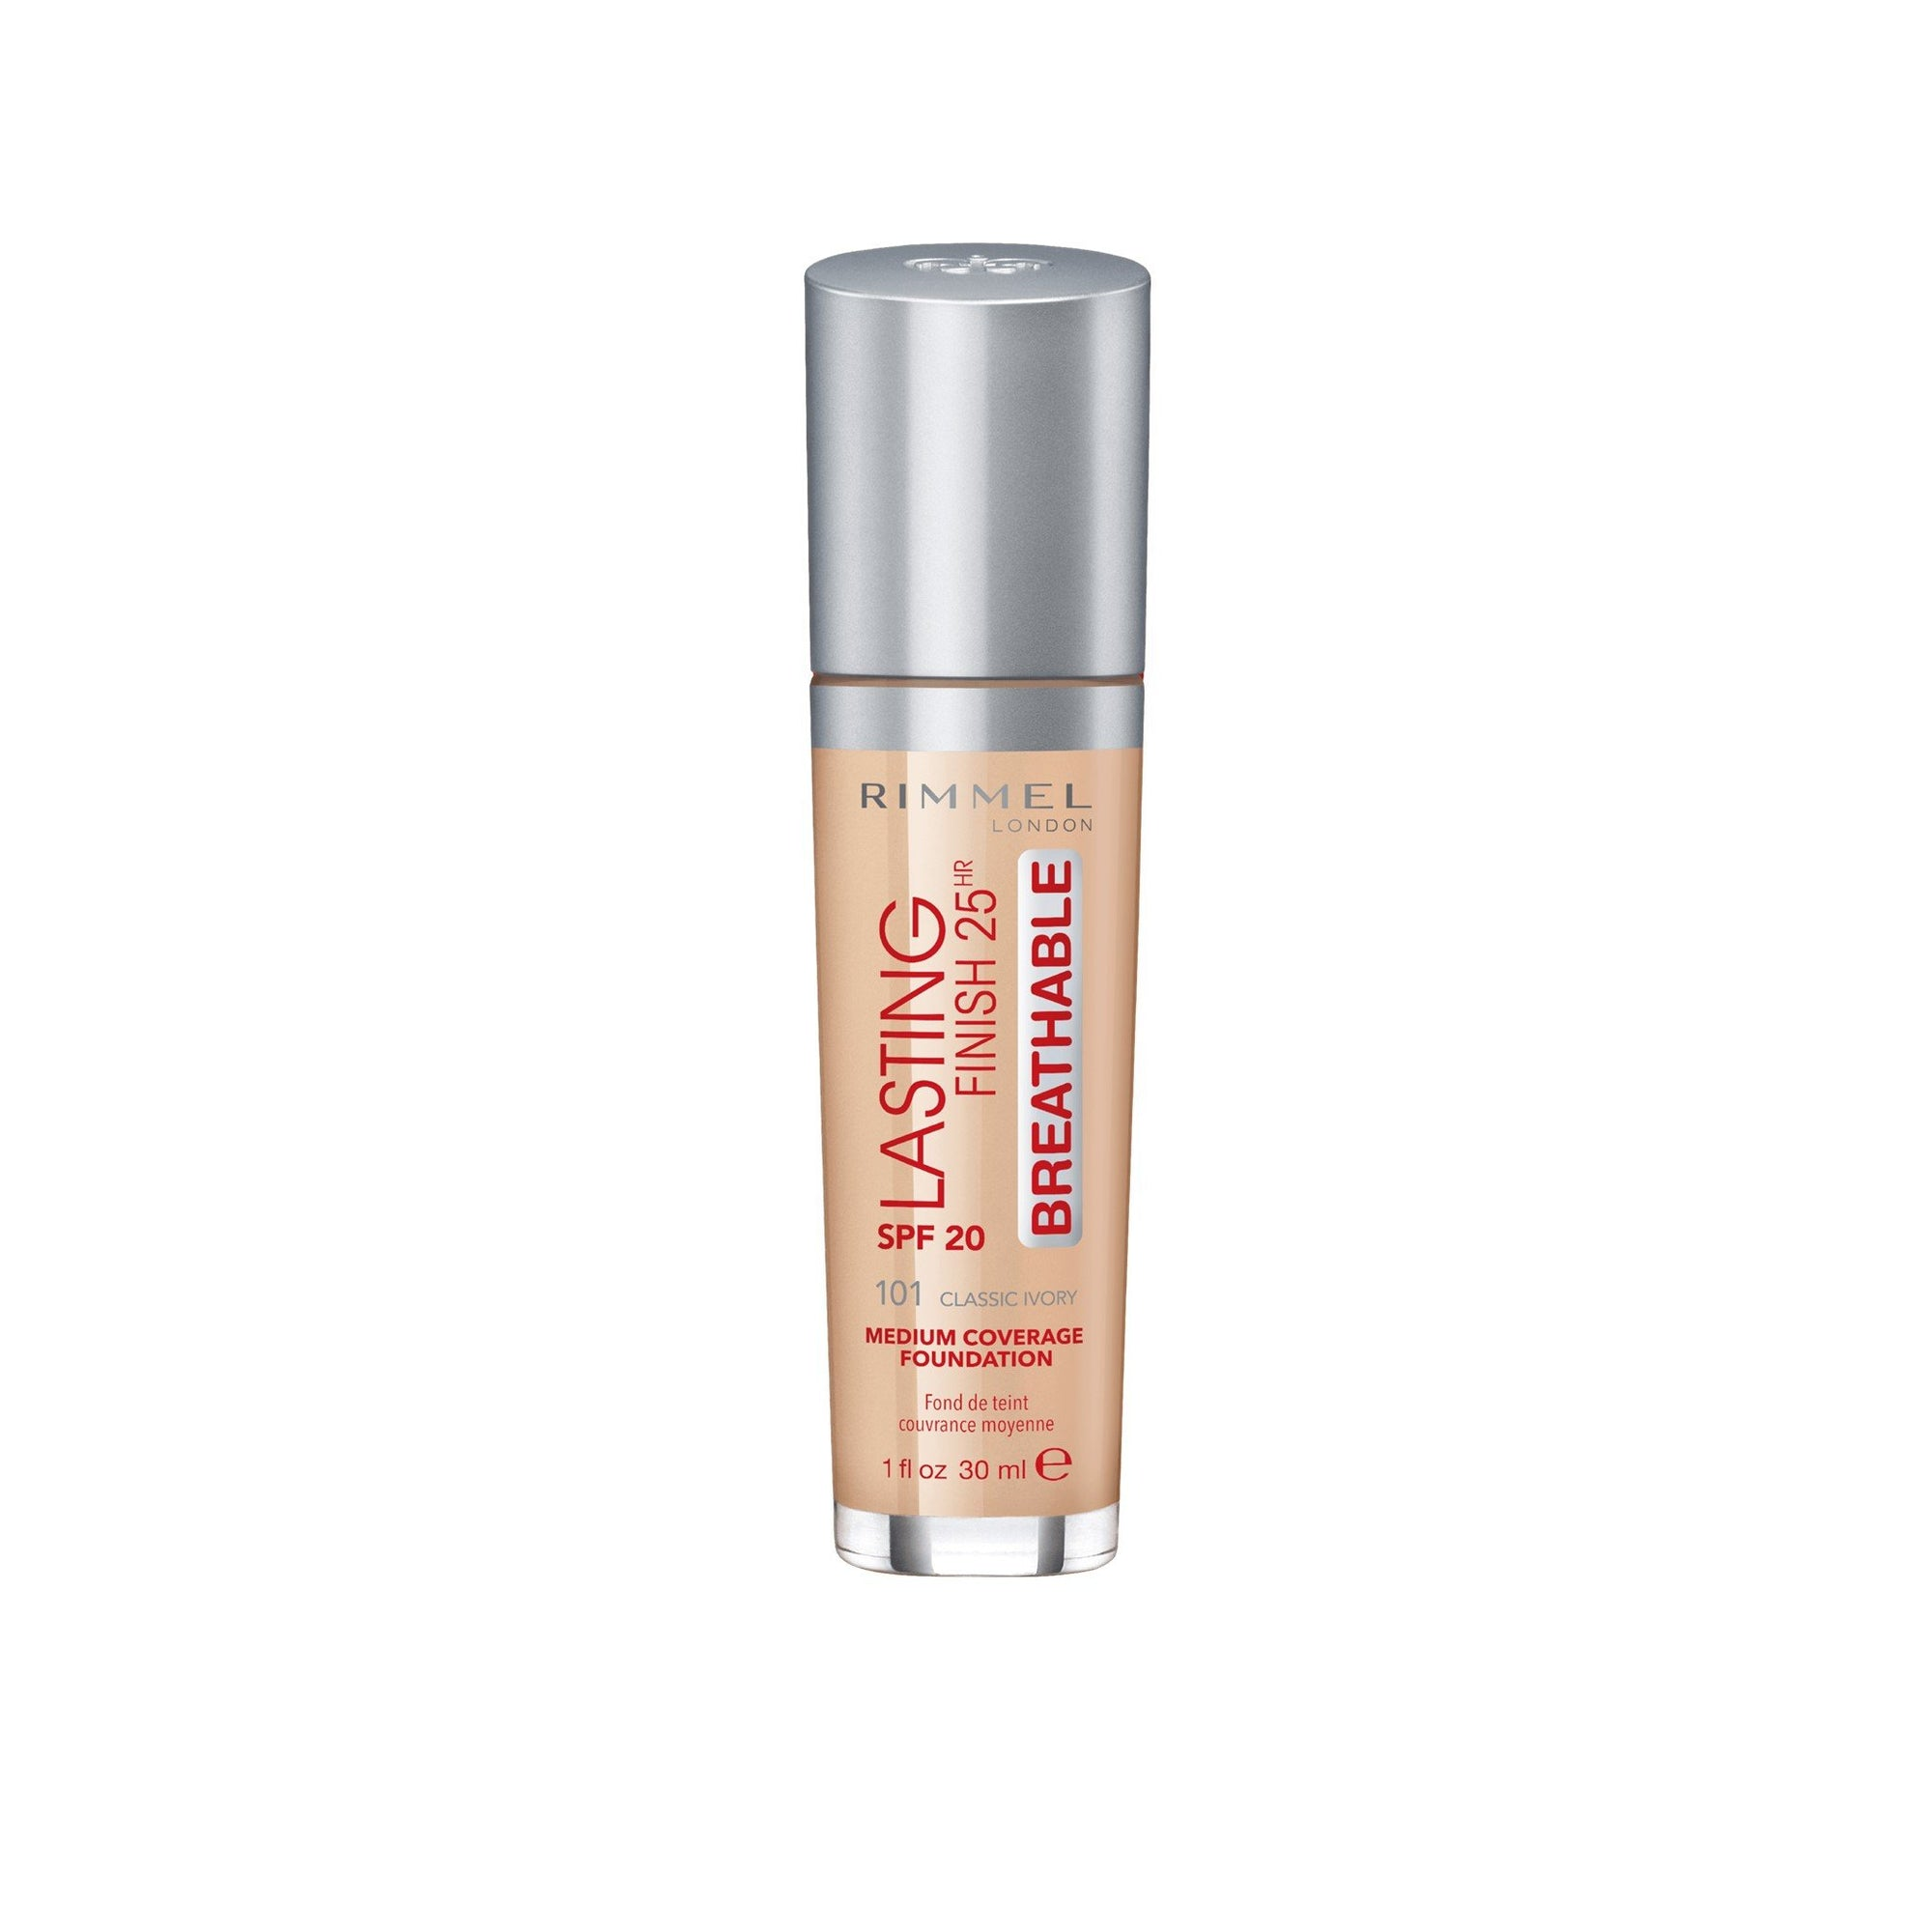 Rimmel London Lasting Finish 25HR Foundation